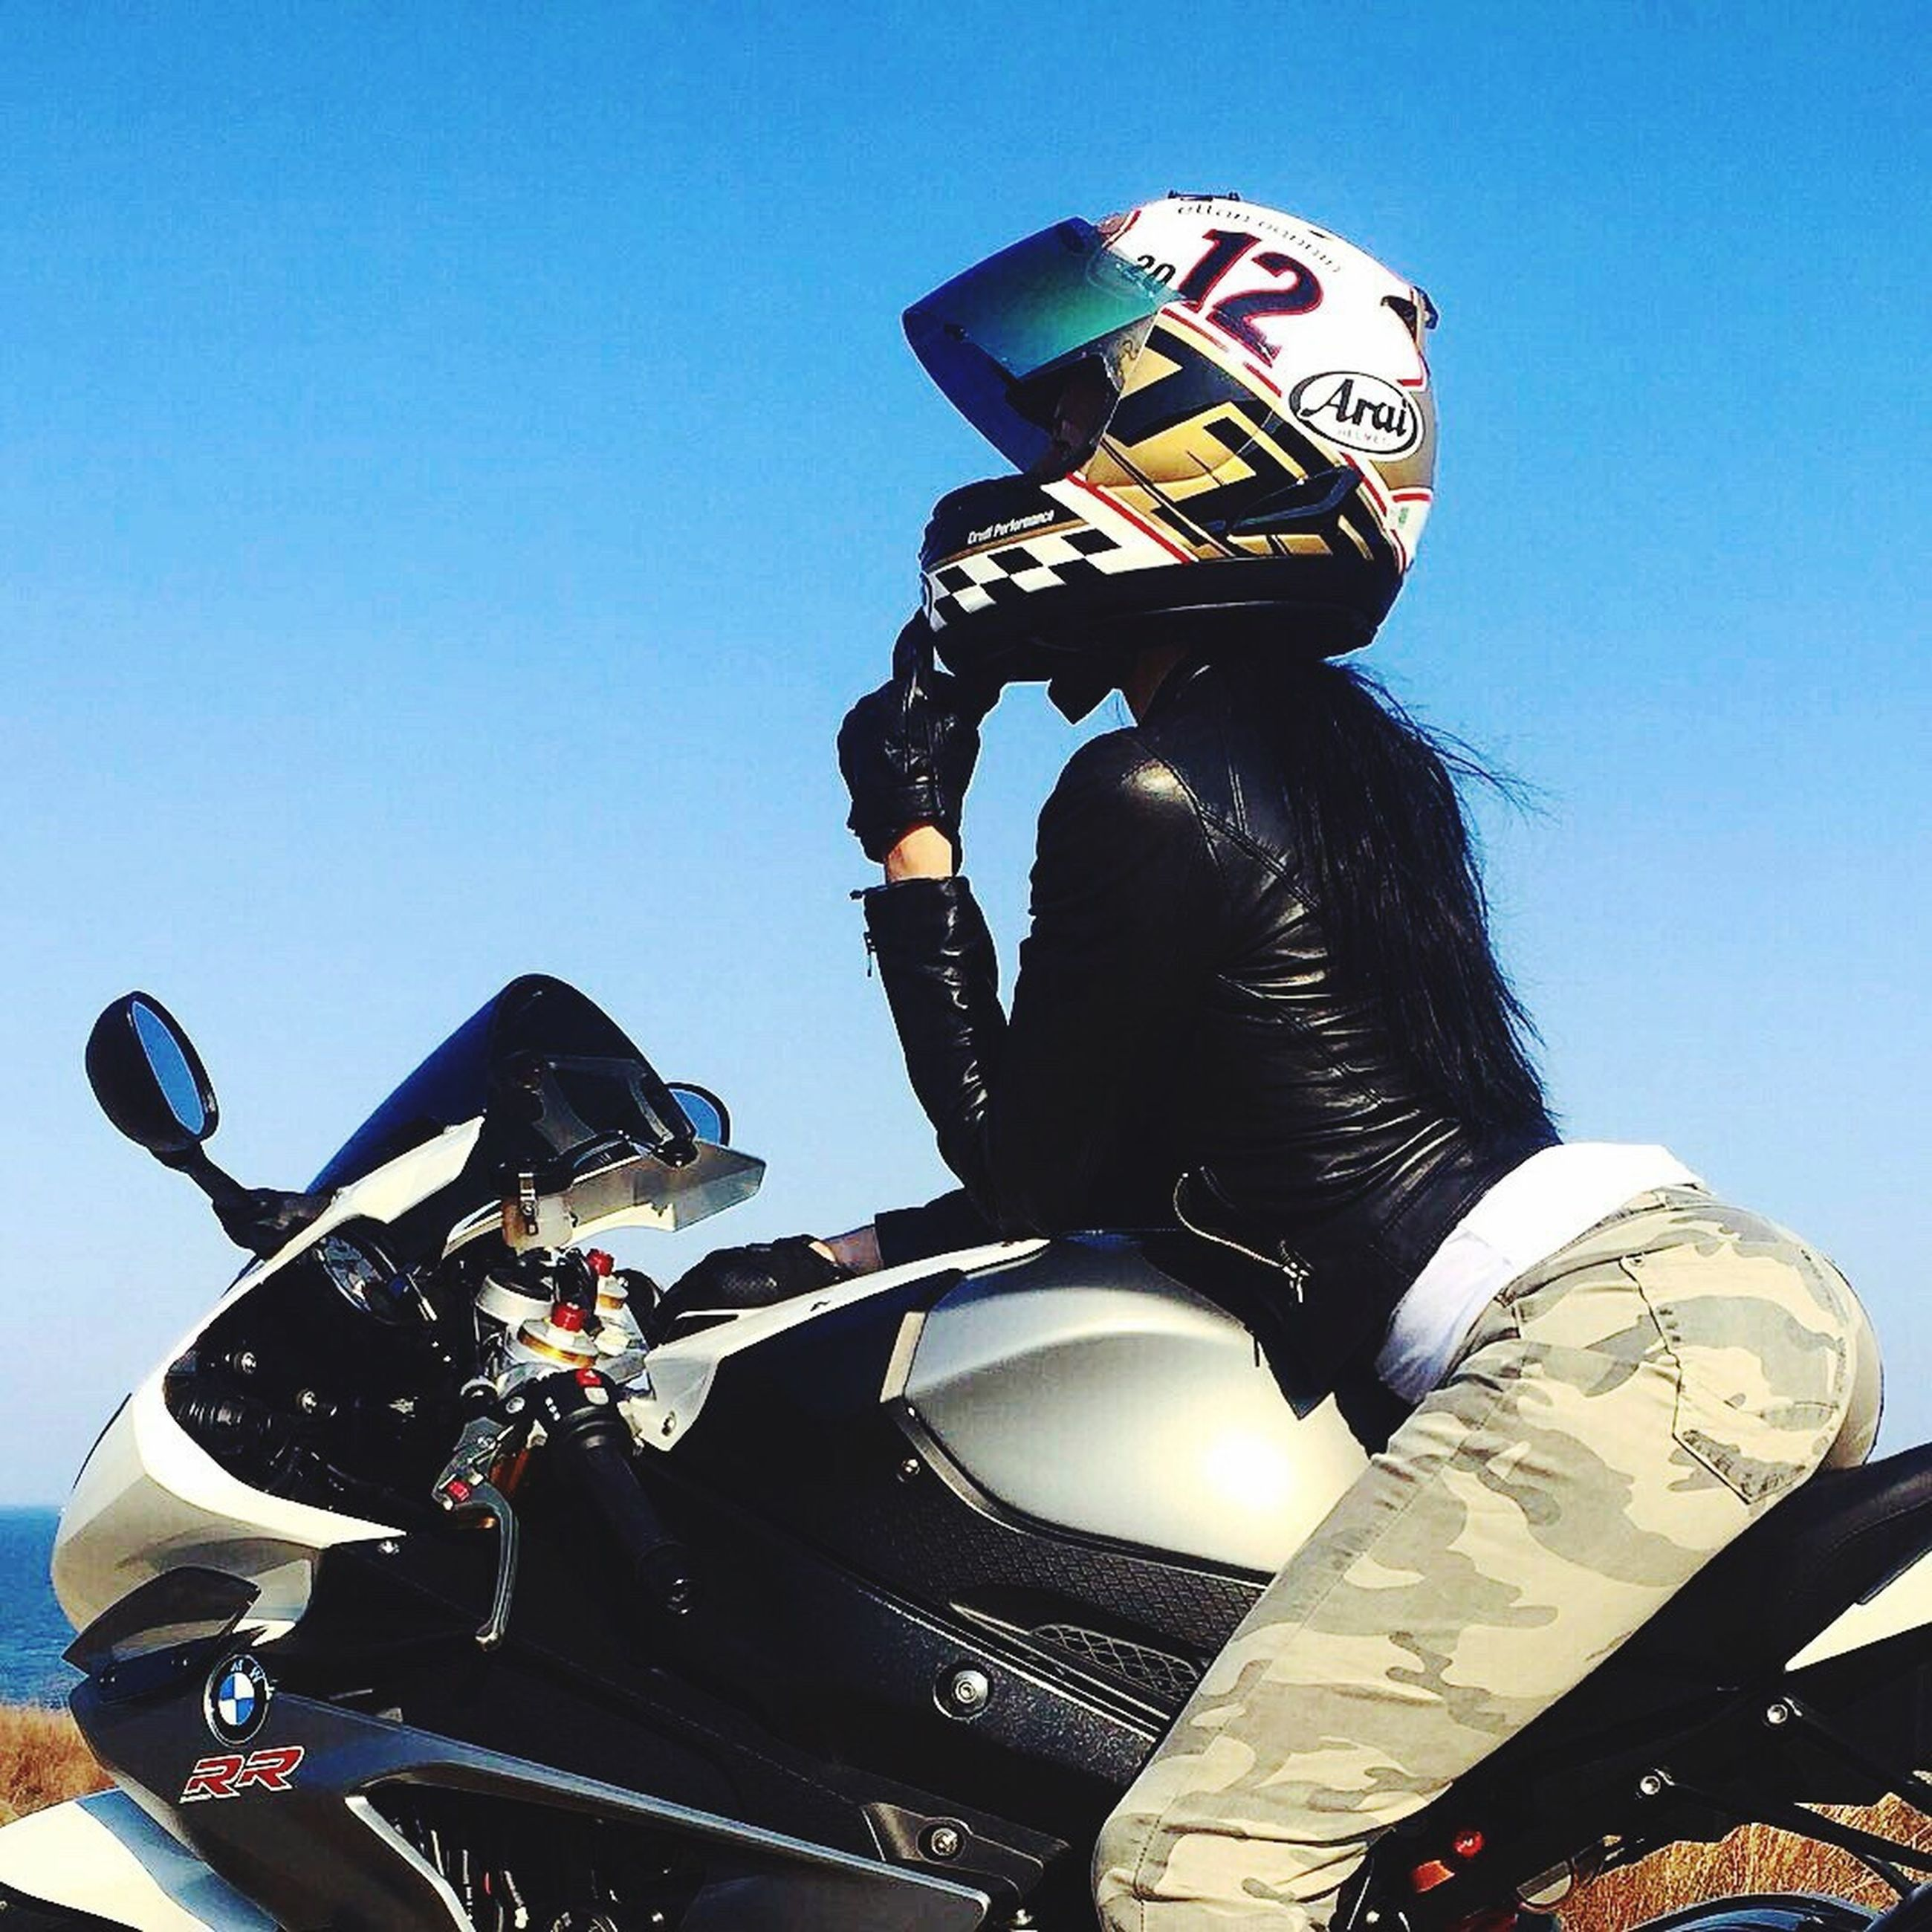 sport, one person, motorcycle, one man only, clear sky, men, skill, outdoors, adults only, biker, sky, only men, people, day, extreme sports, adult, motorcycle racing, motorsport